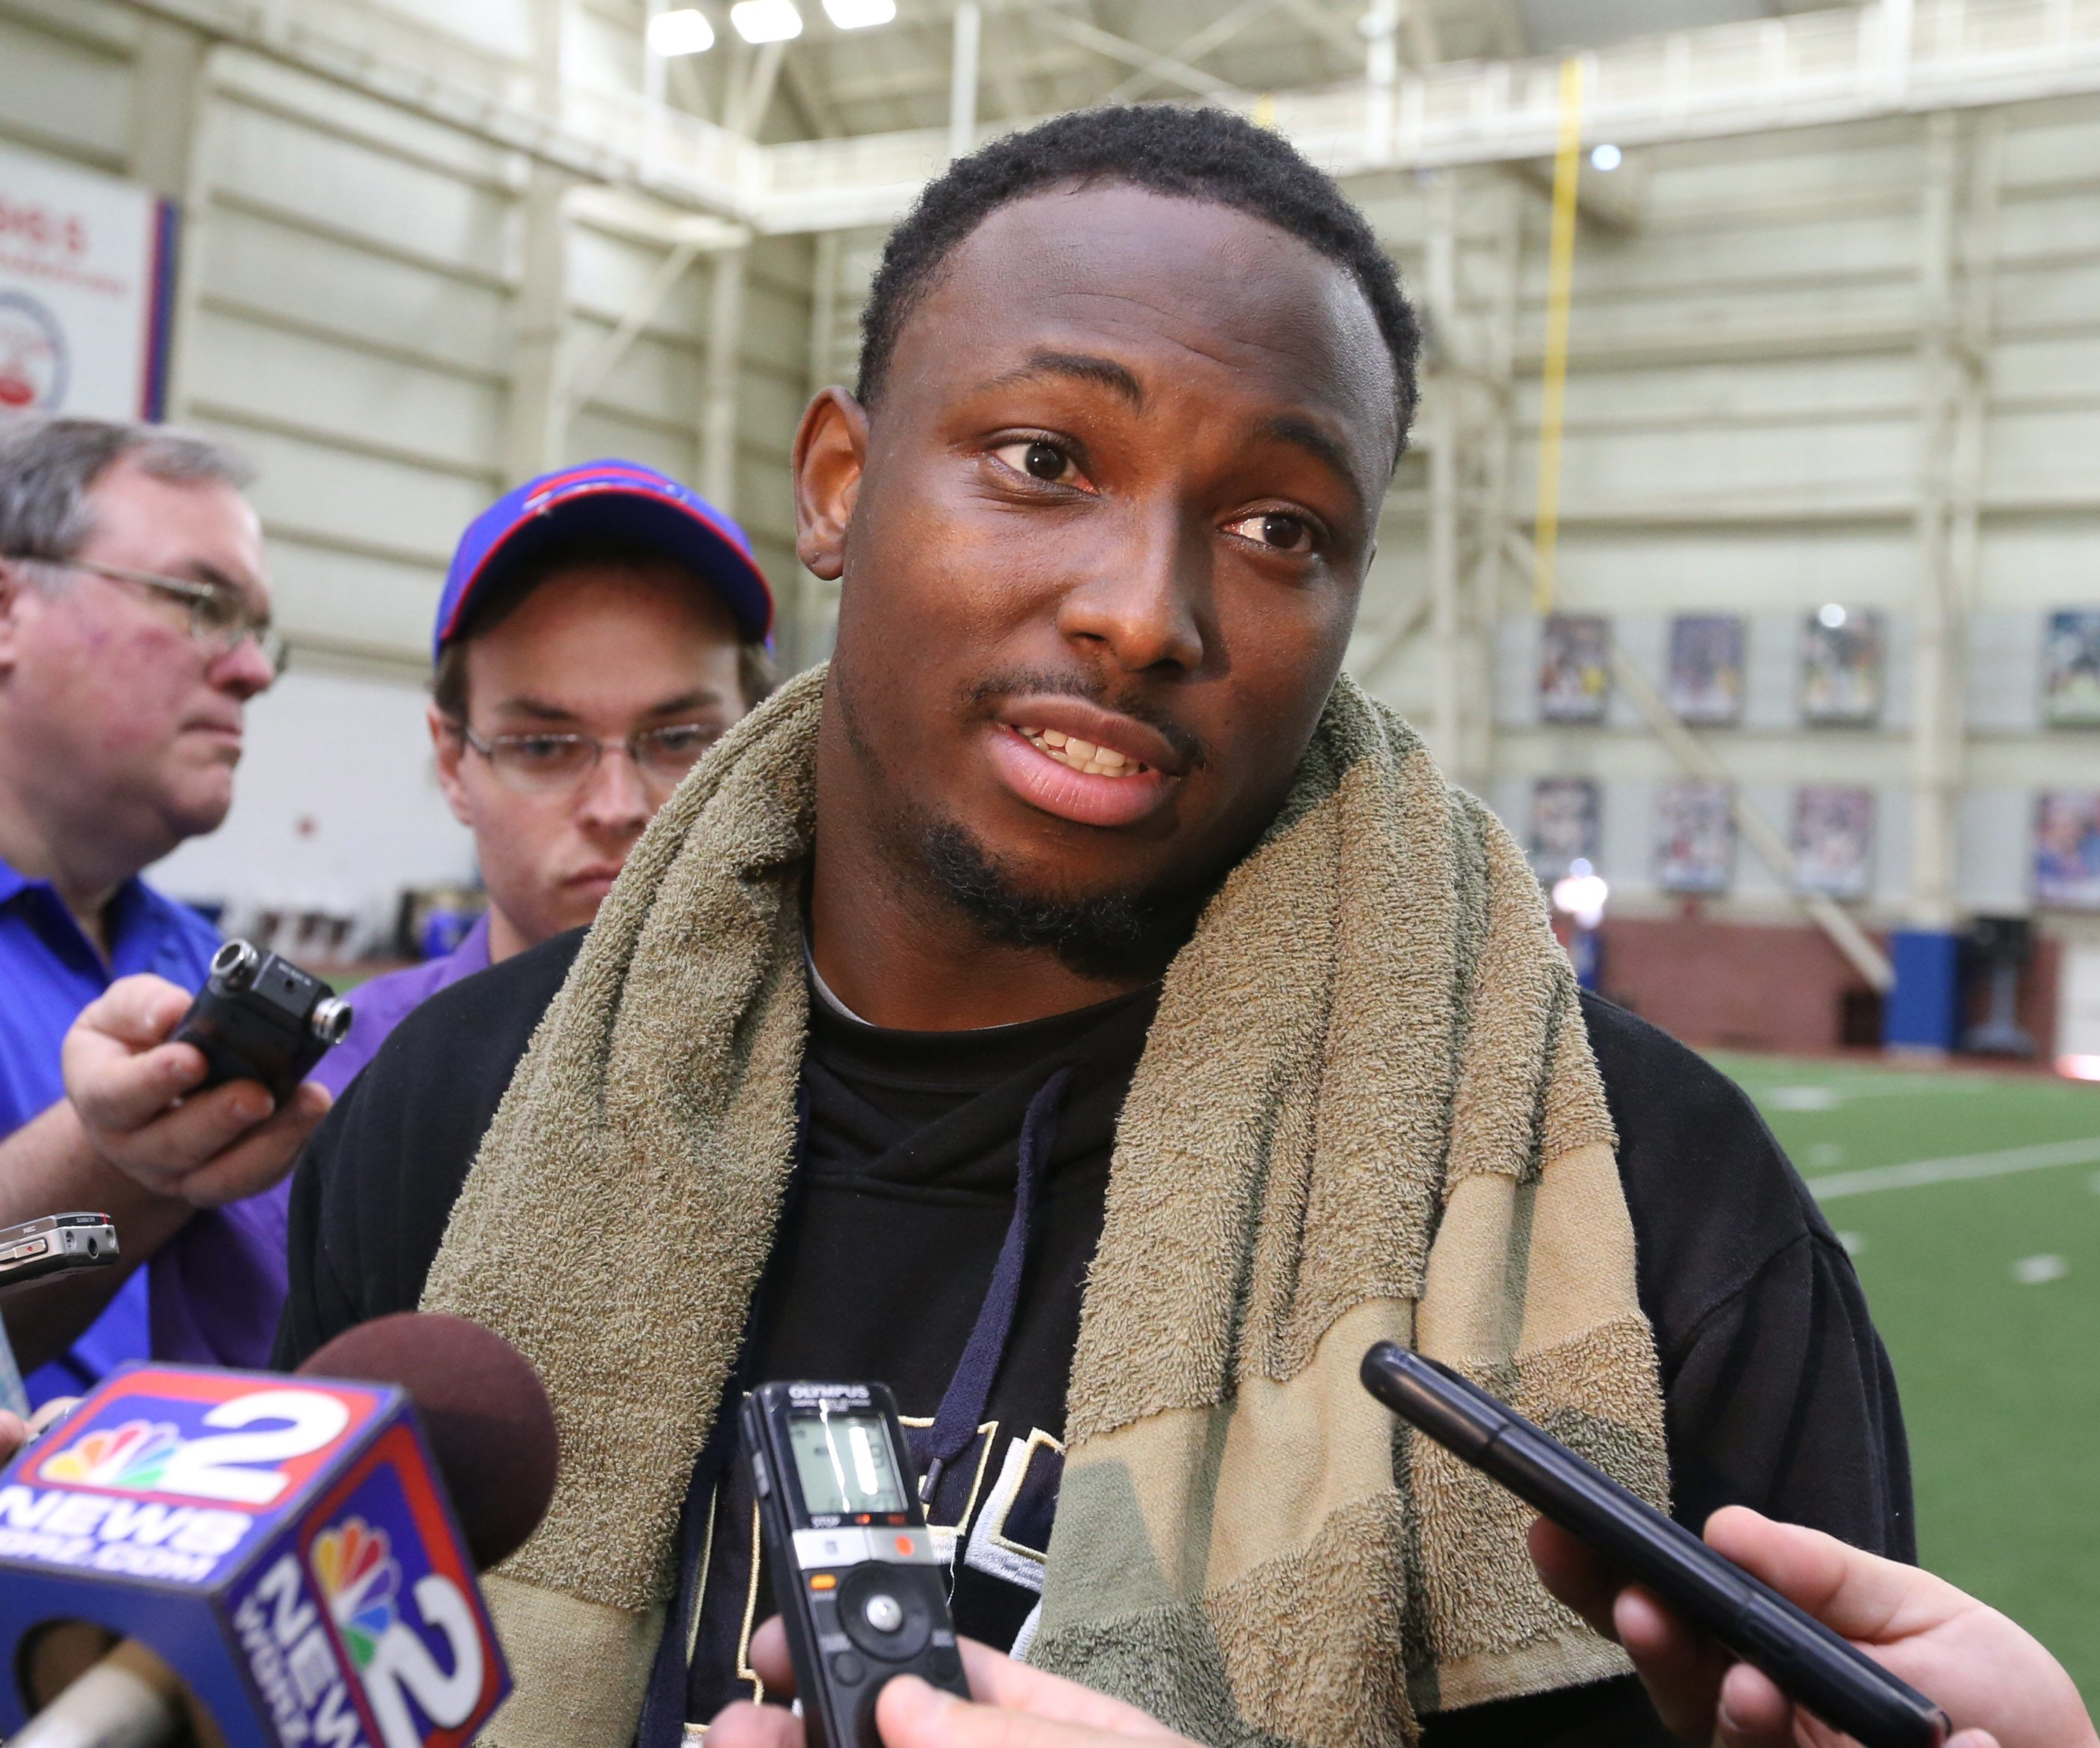 Buffalo Bills running back LeSean Mccoy talked to the press after the Bills OTA's at Ad Pro training center in Orchard Park,NY on Wednesday, June 3, 2015.  (James P. McCoy/ Buffalo News)